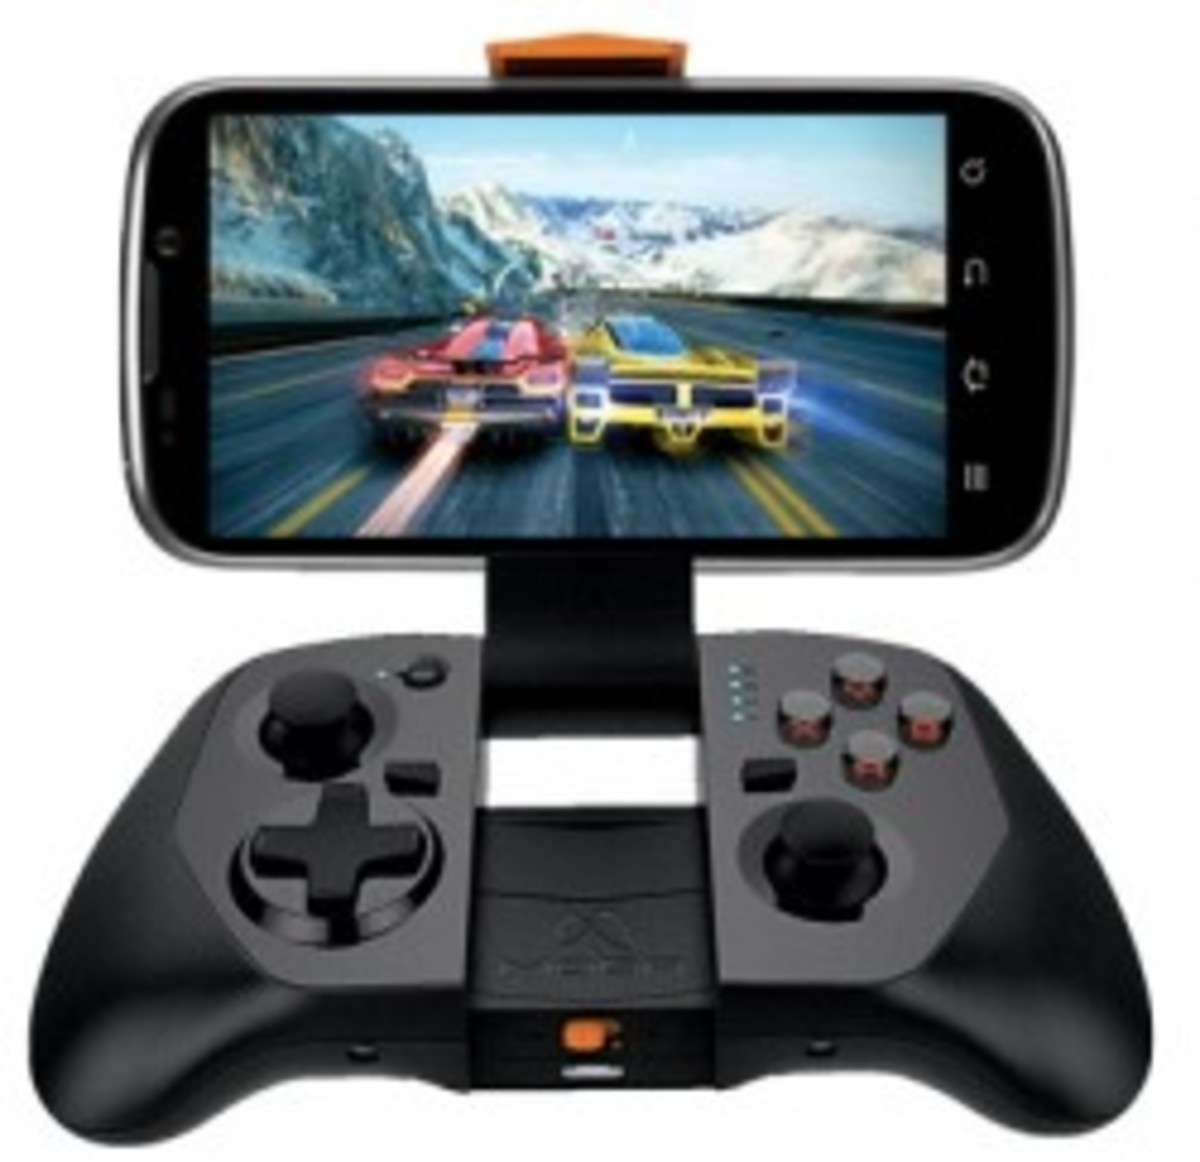 Moga gaming console style controller for your phone.